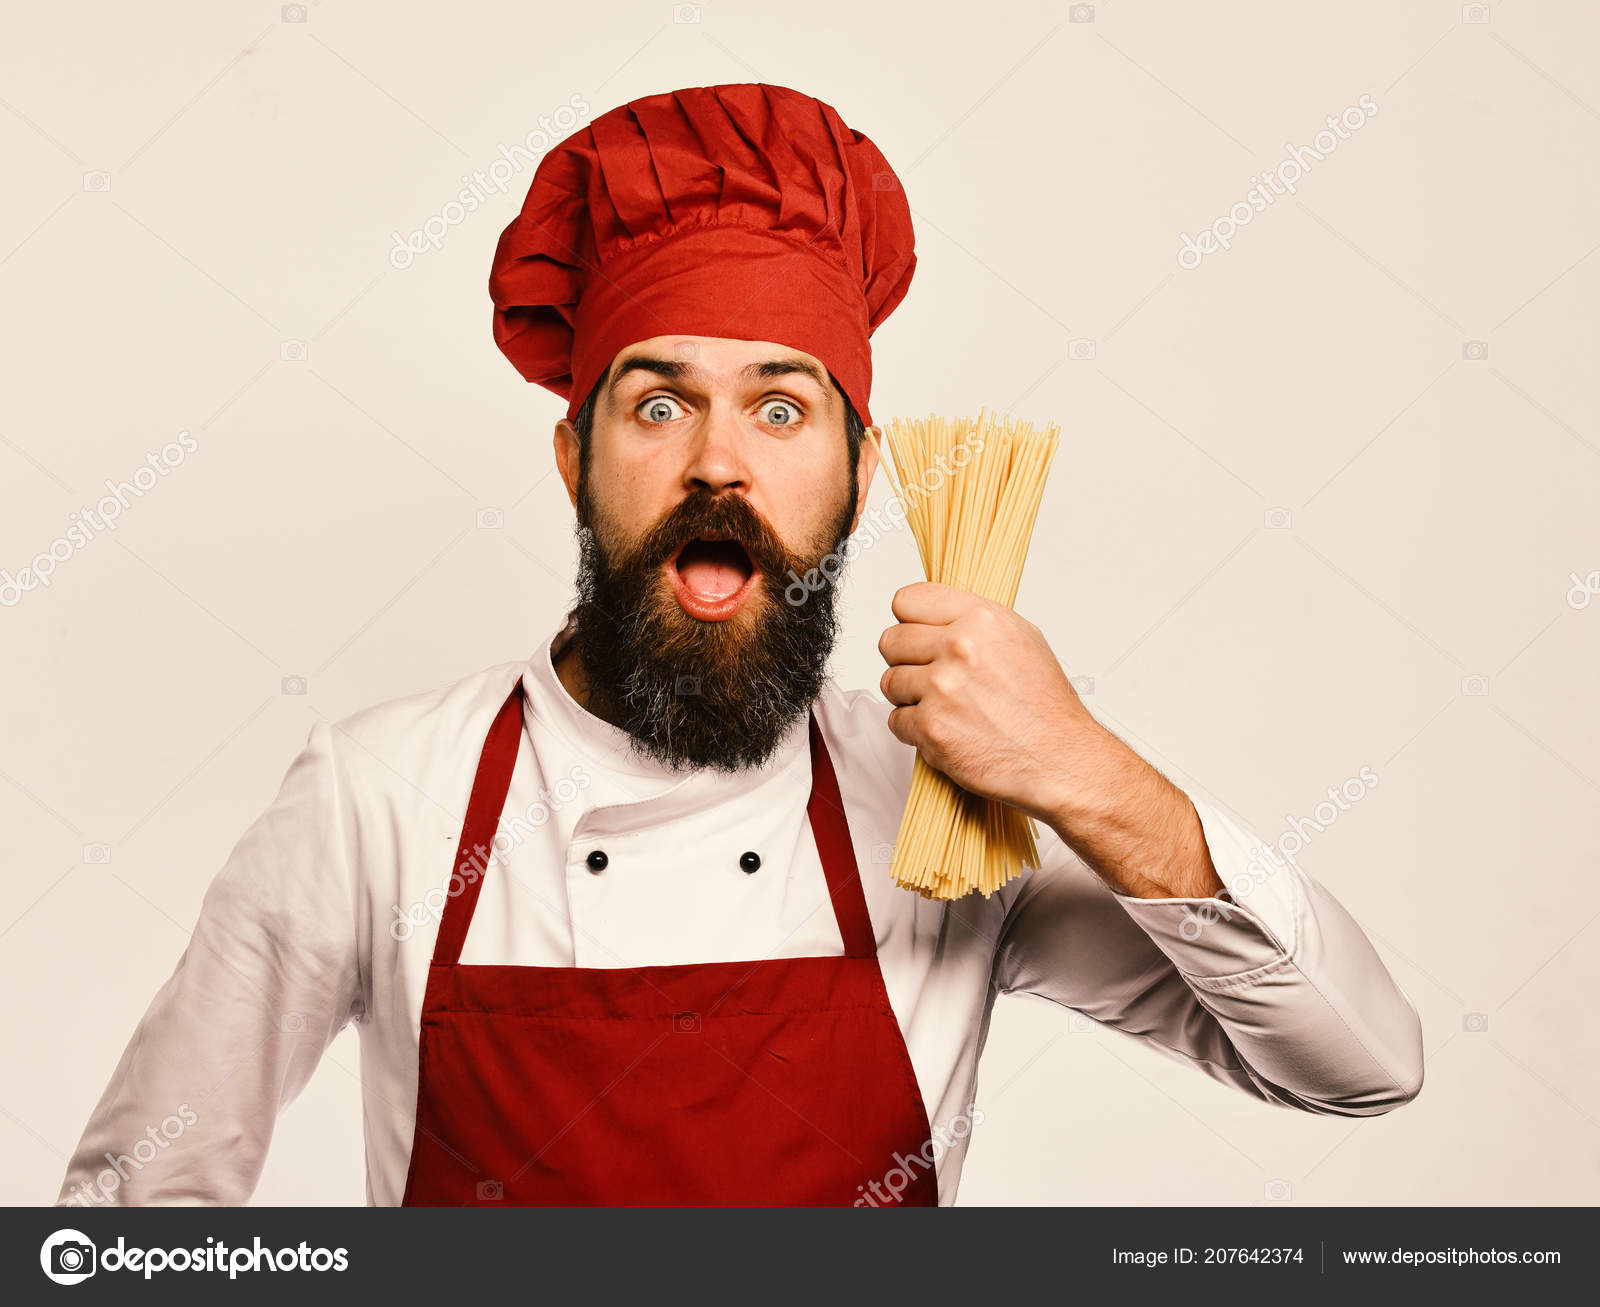 Stock Cuisine Saint Priest Cook With Surprised Face In Burgundy Uniform Holds Dry Pasta